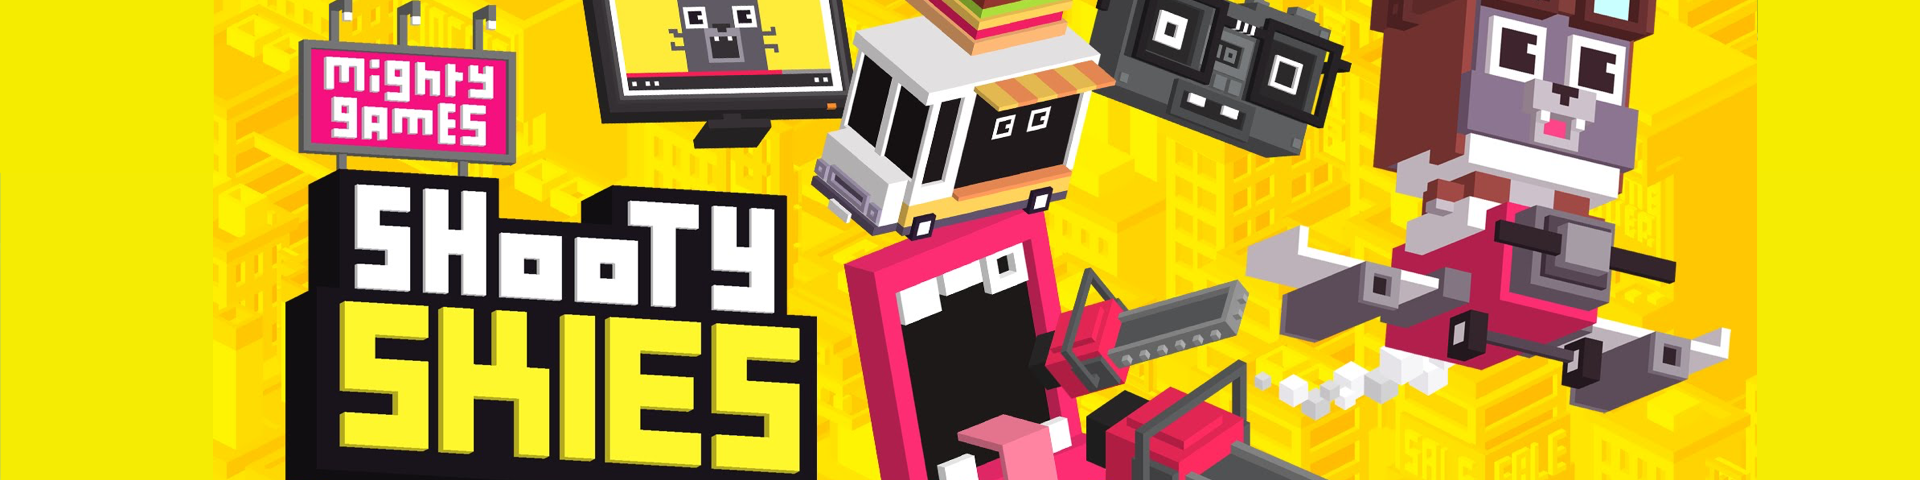 shooty skies secret characters